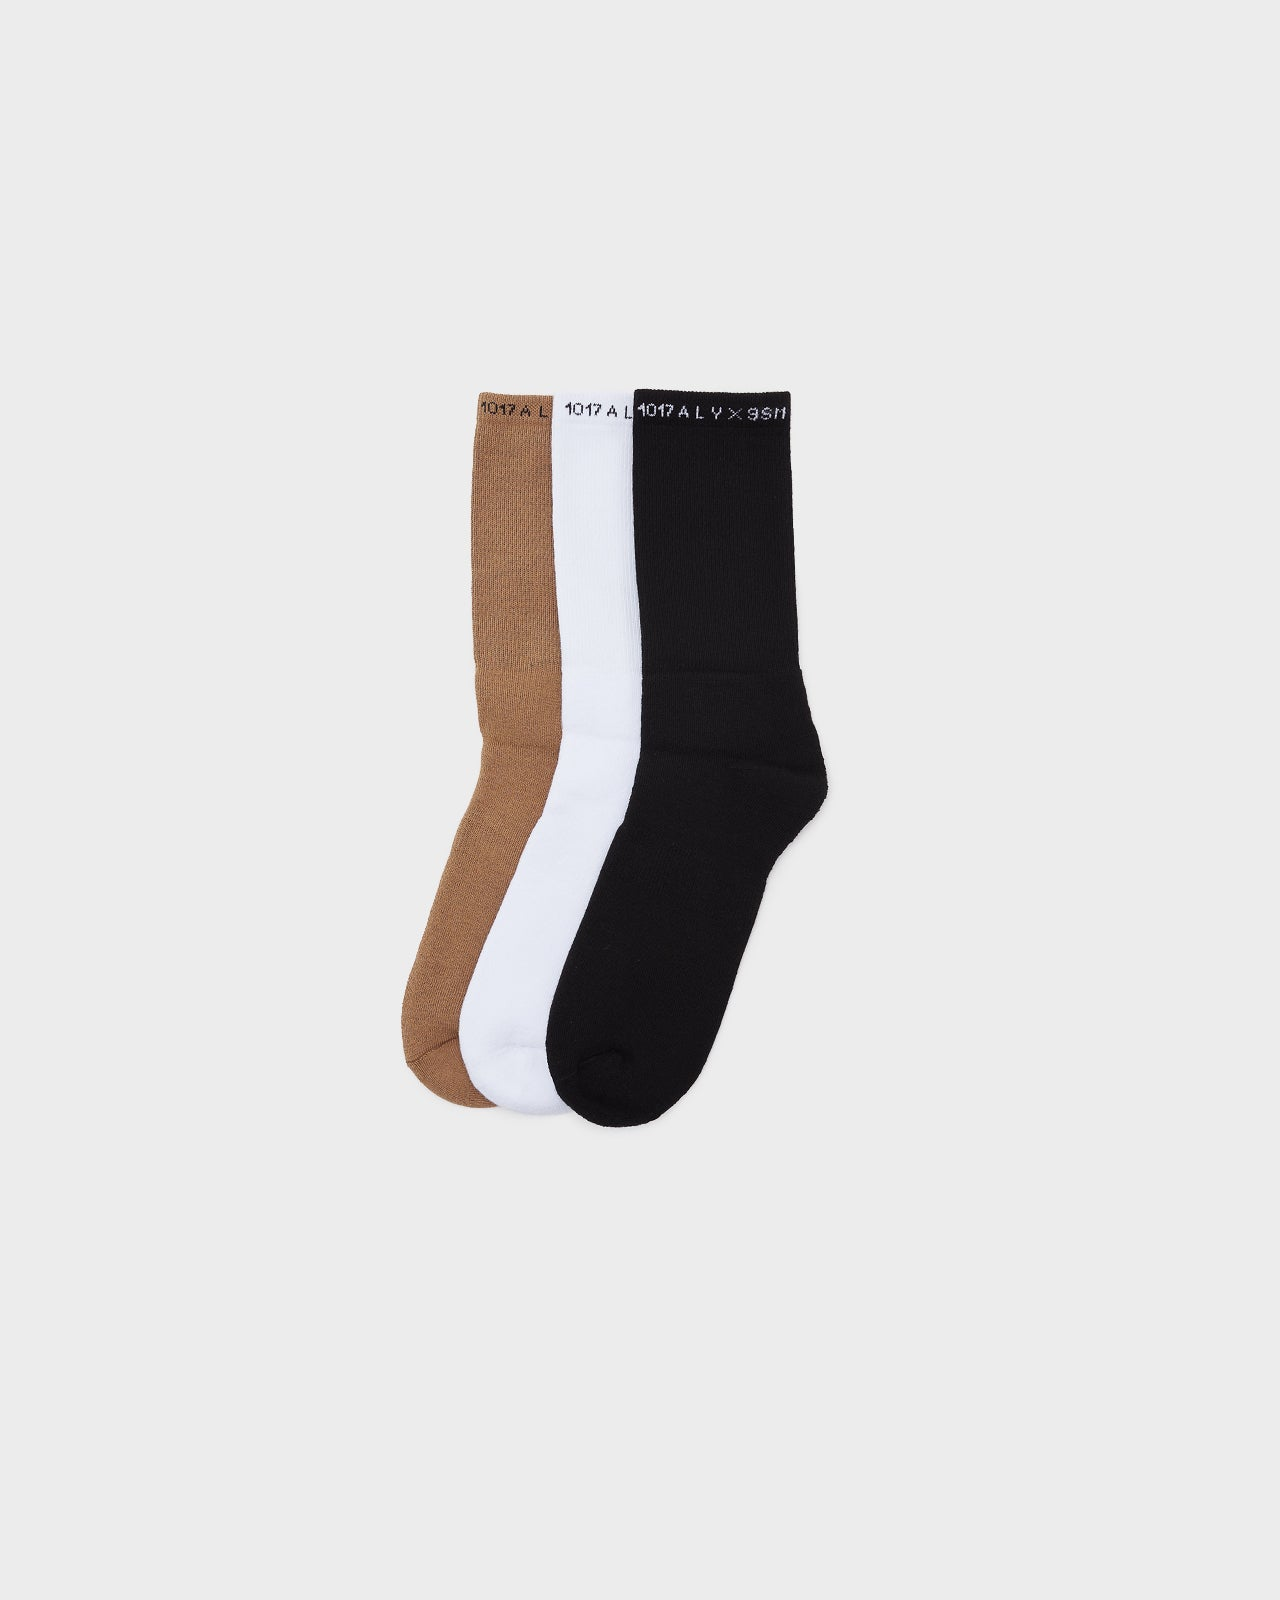 3 Pack of Socks in Black, White, Brown